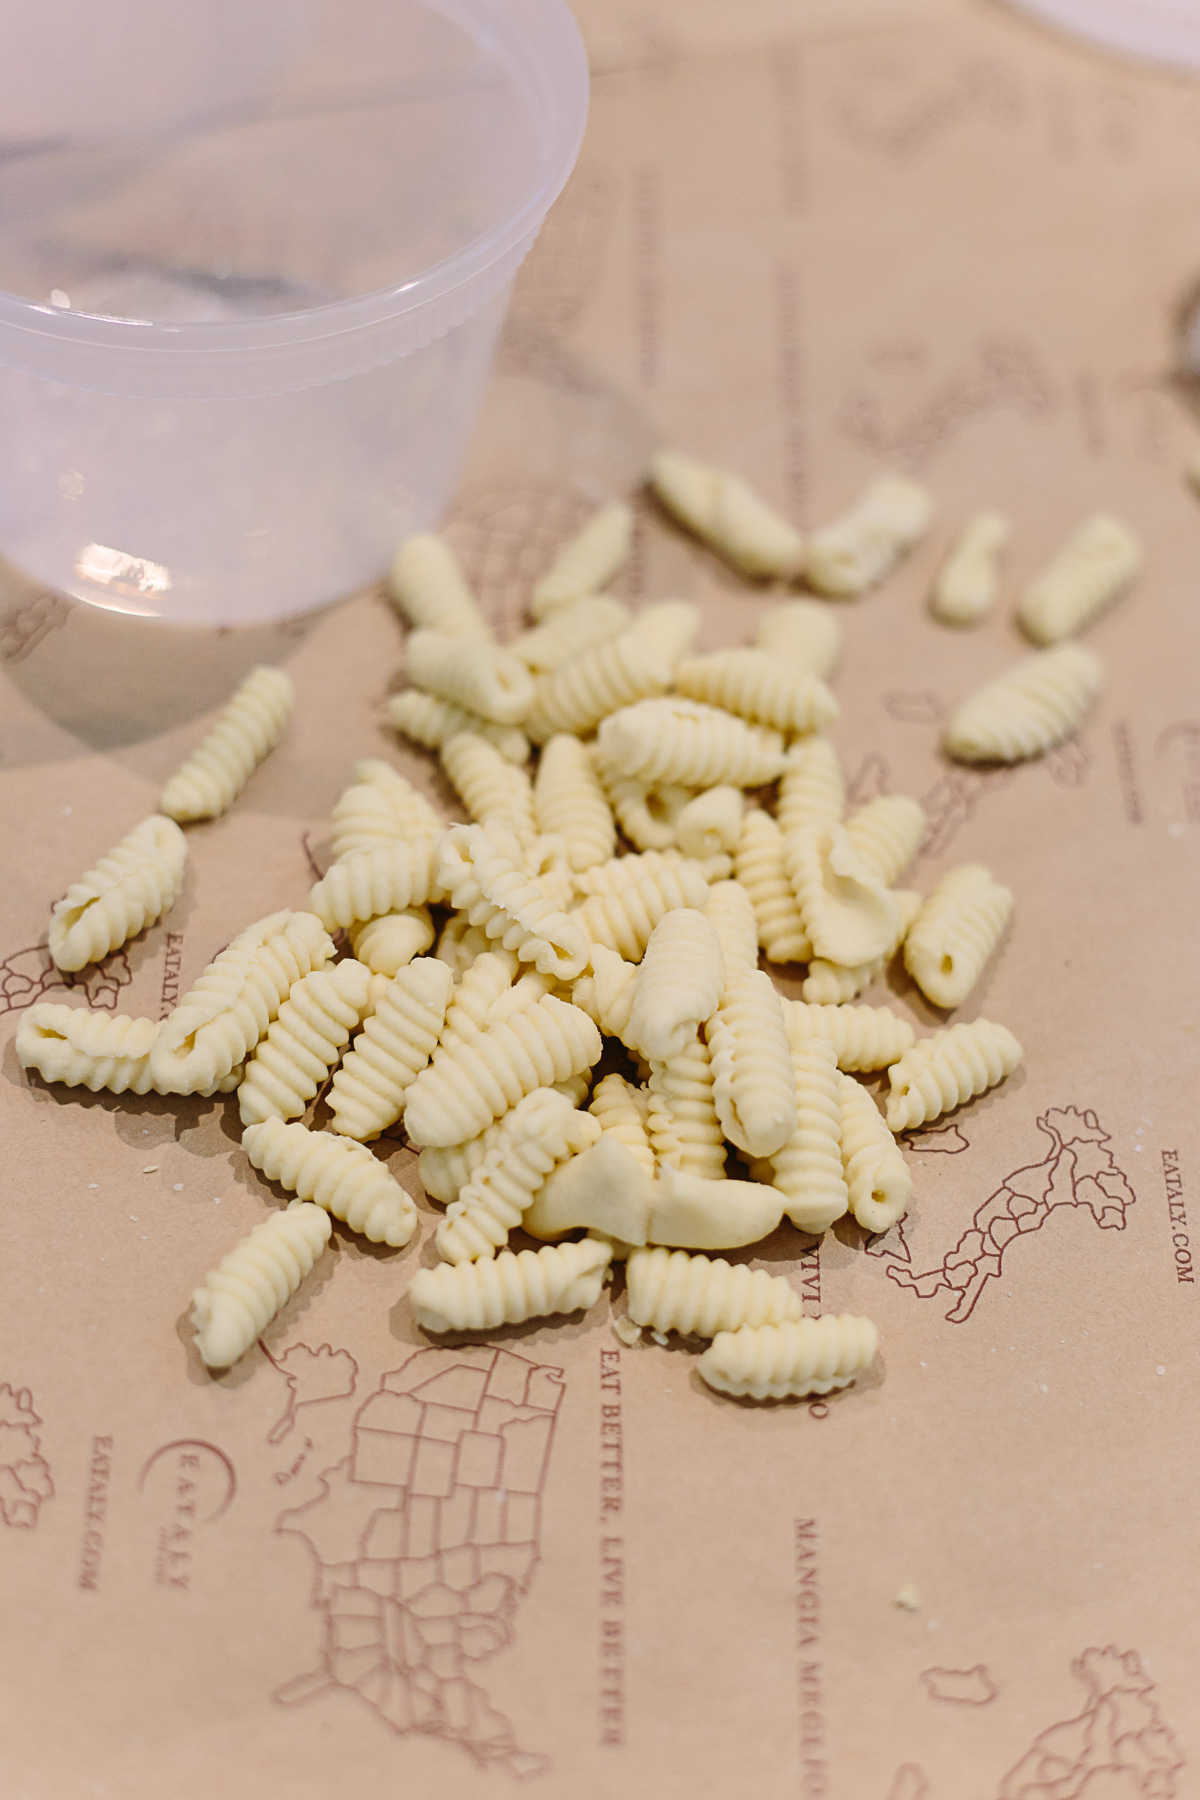 homemade-pasta-at-eataly-pasta-making-class-5754